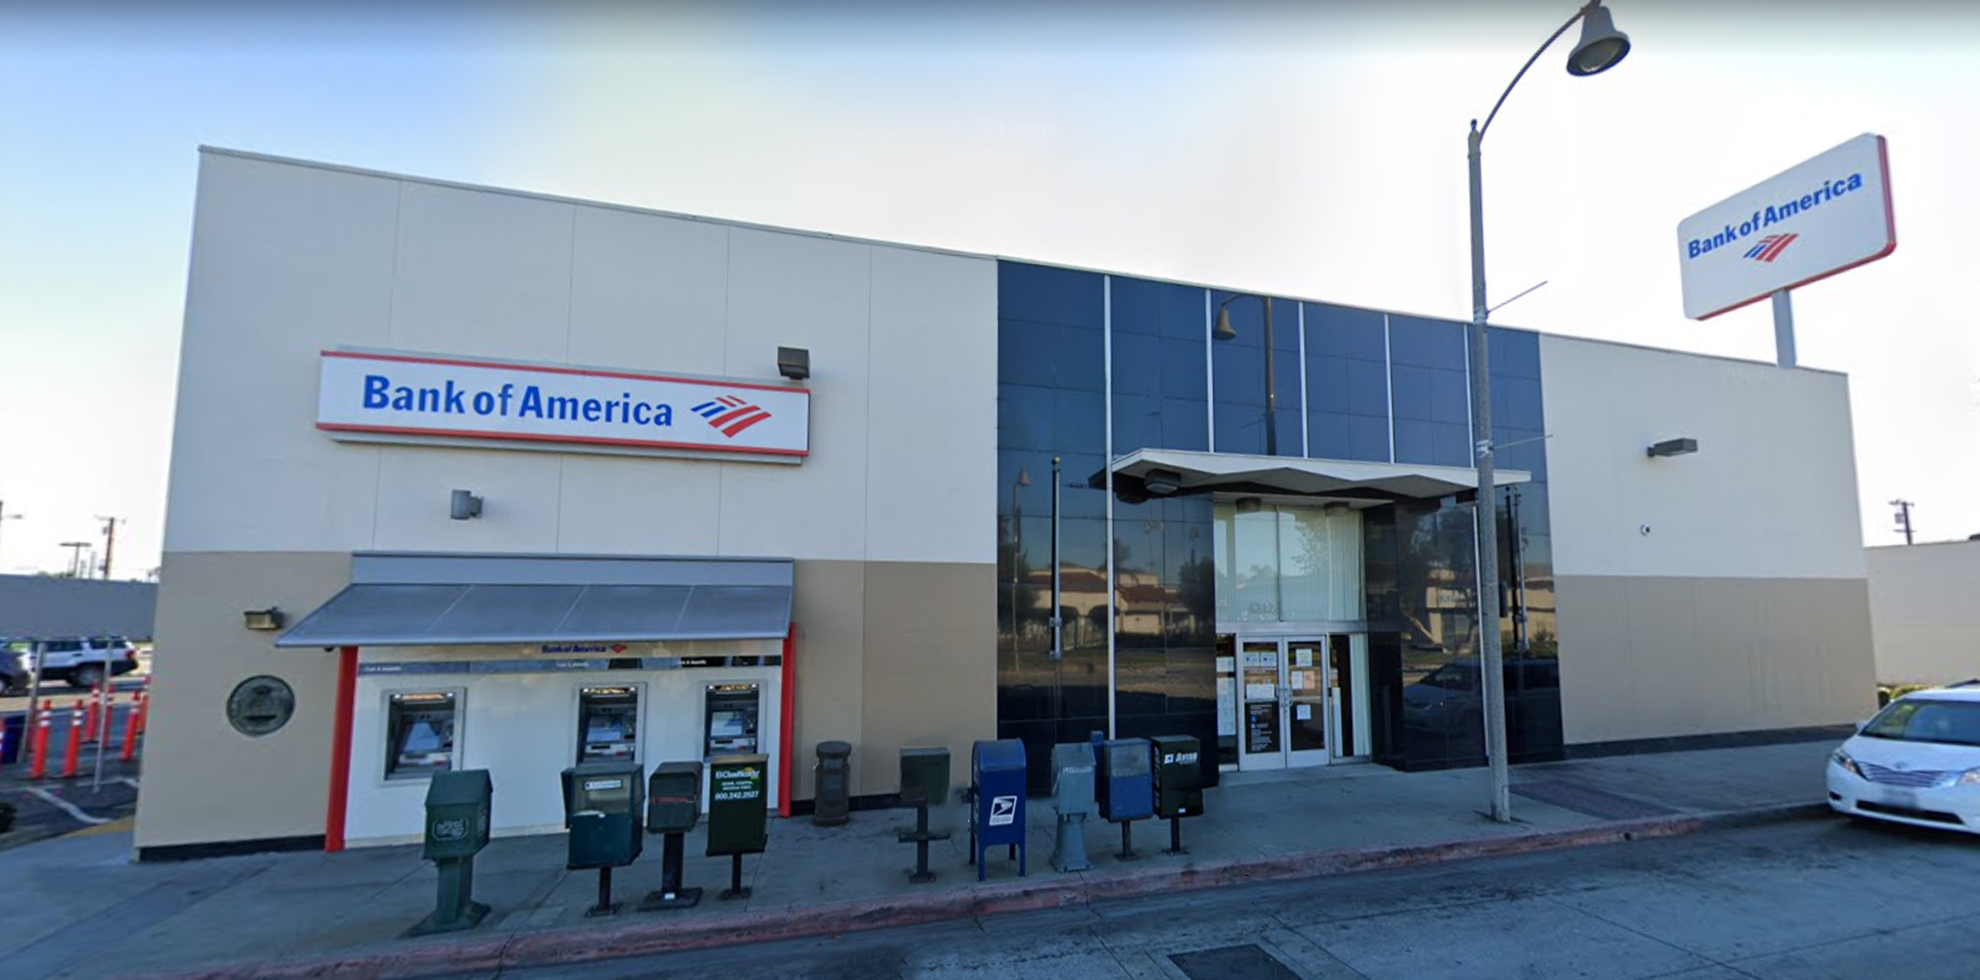 Bank of America financial center with drive-thru ATM | 6312 Atlantic Ave, Bell, CA 90201